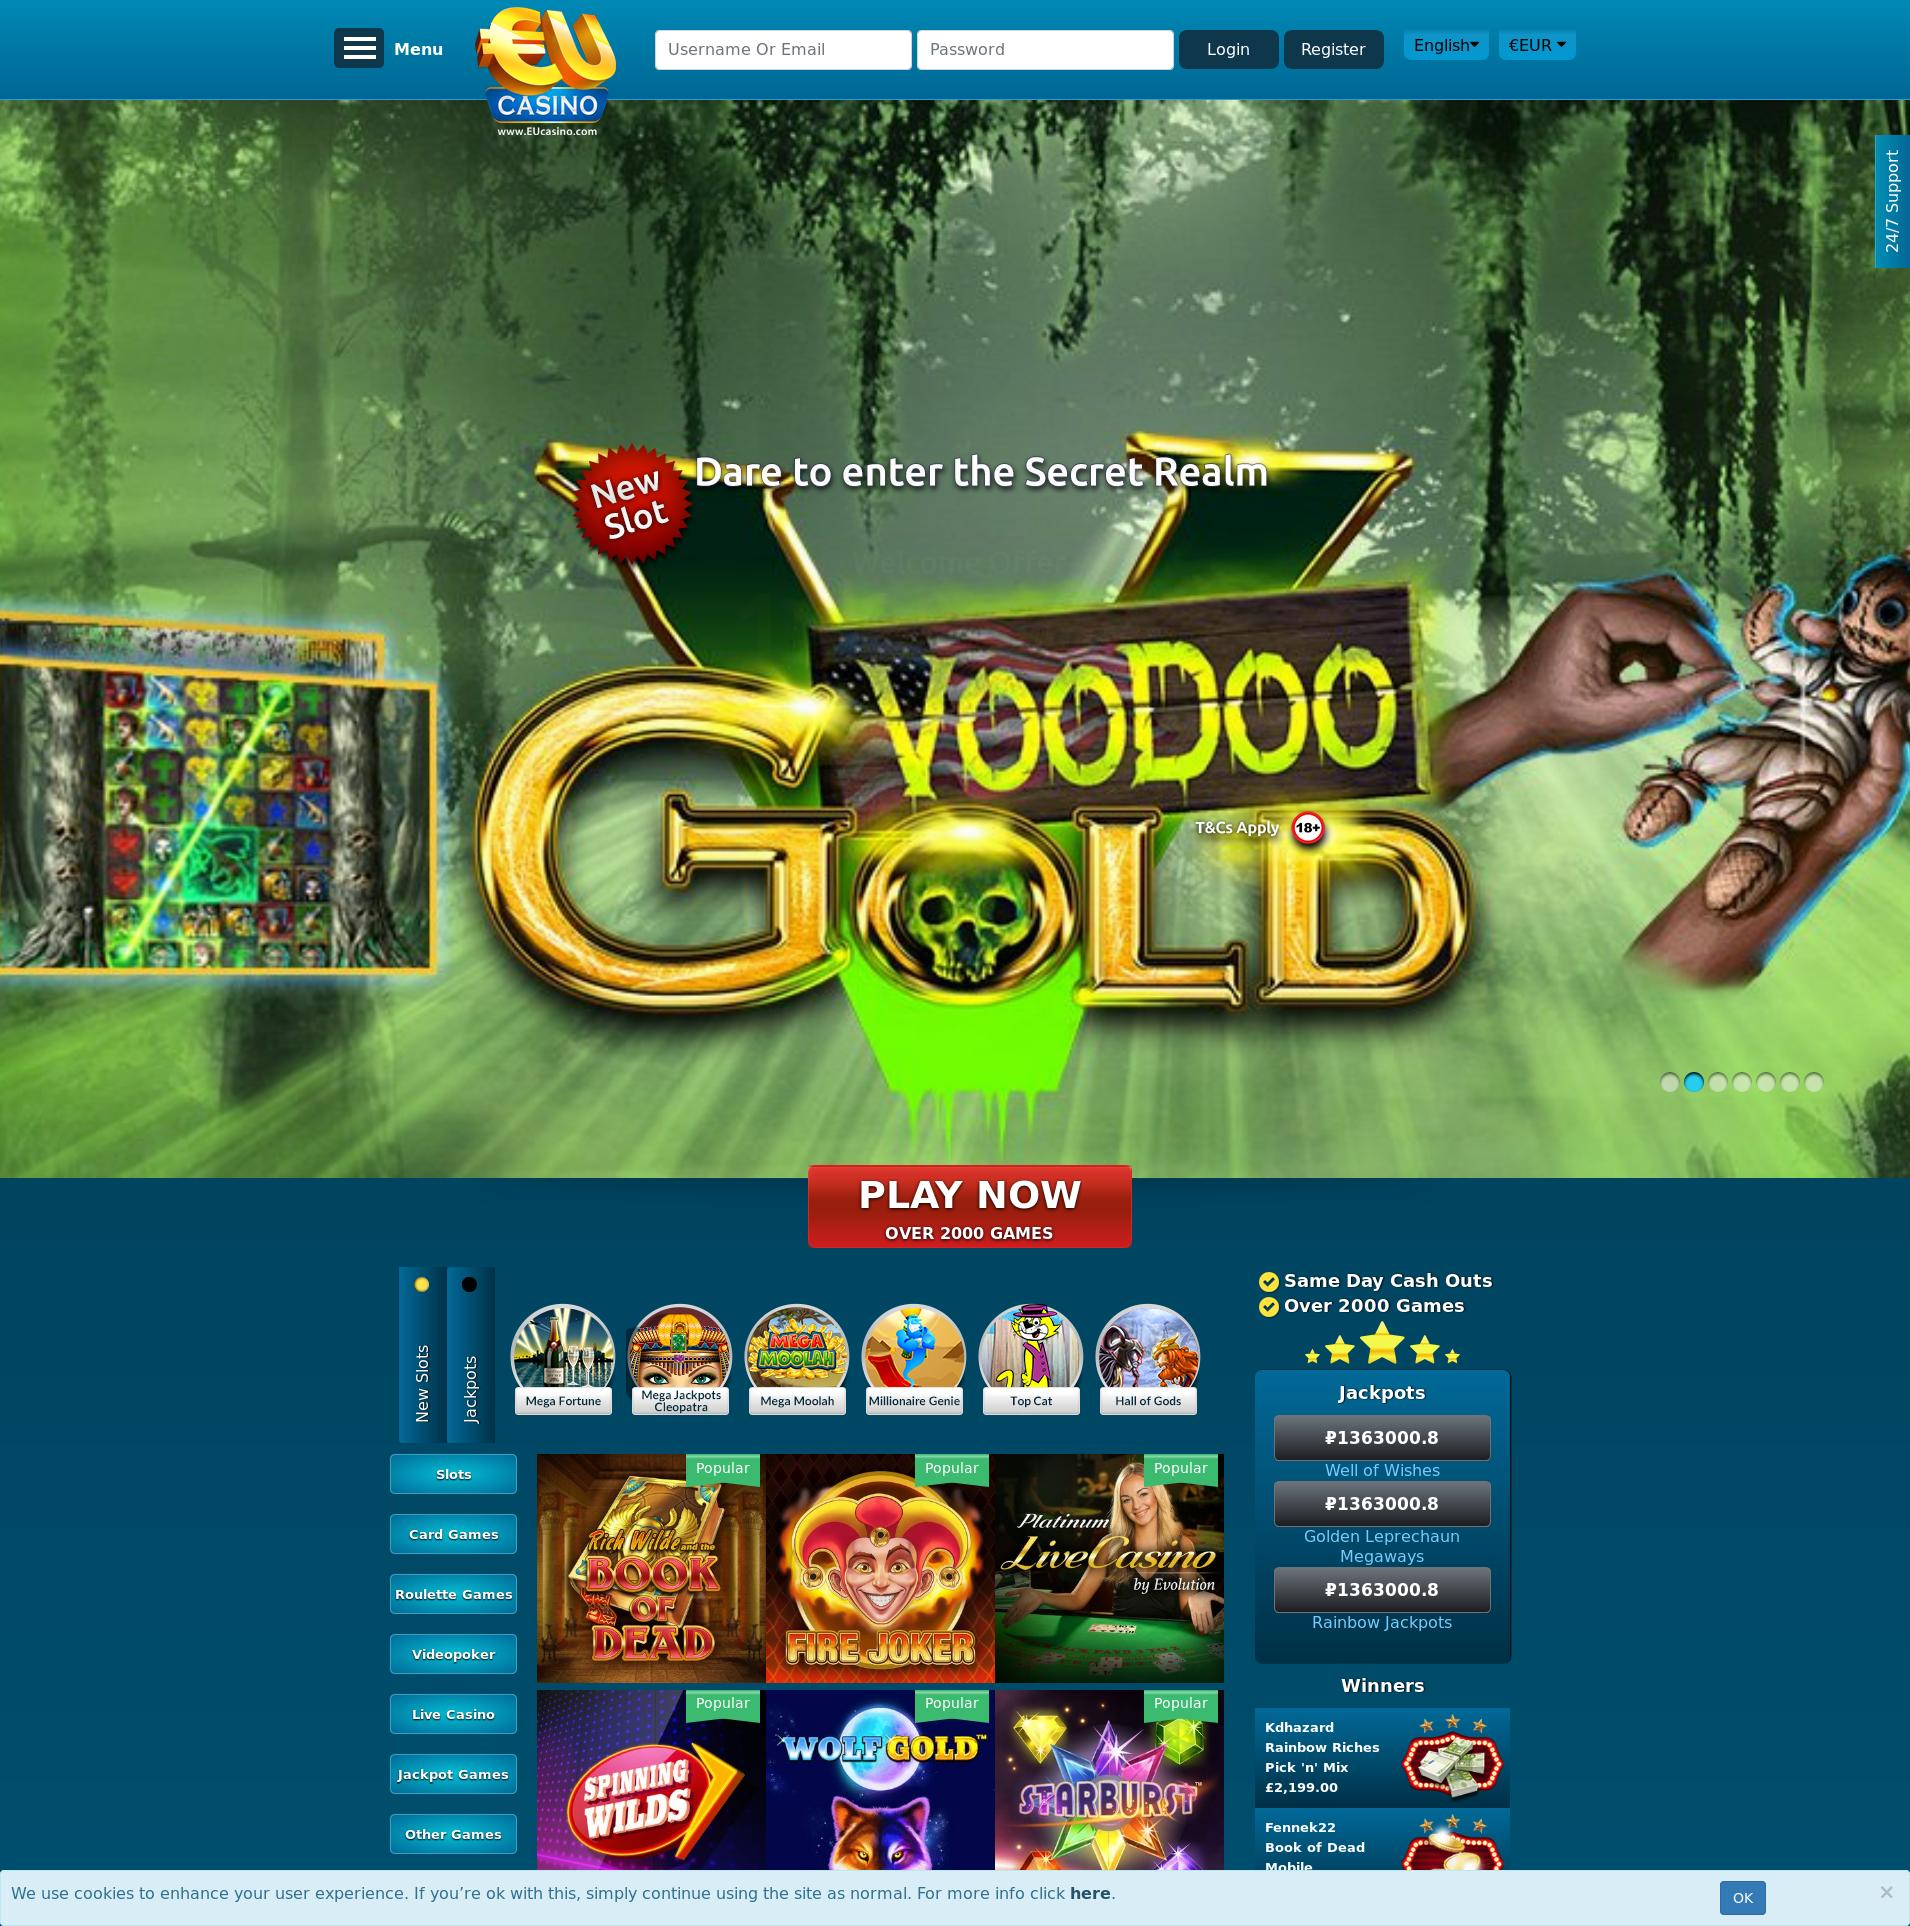 Casino screen Lobby 2019-10-20 for Russian Federation